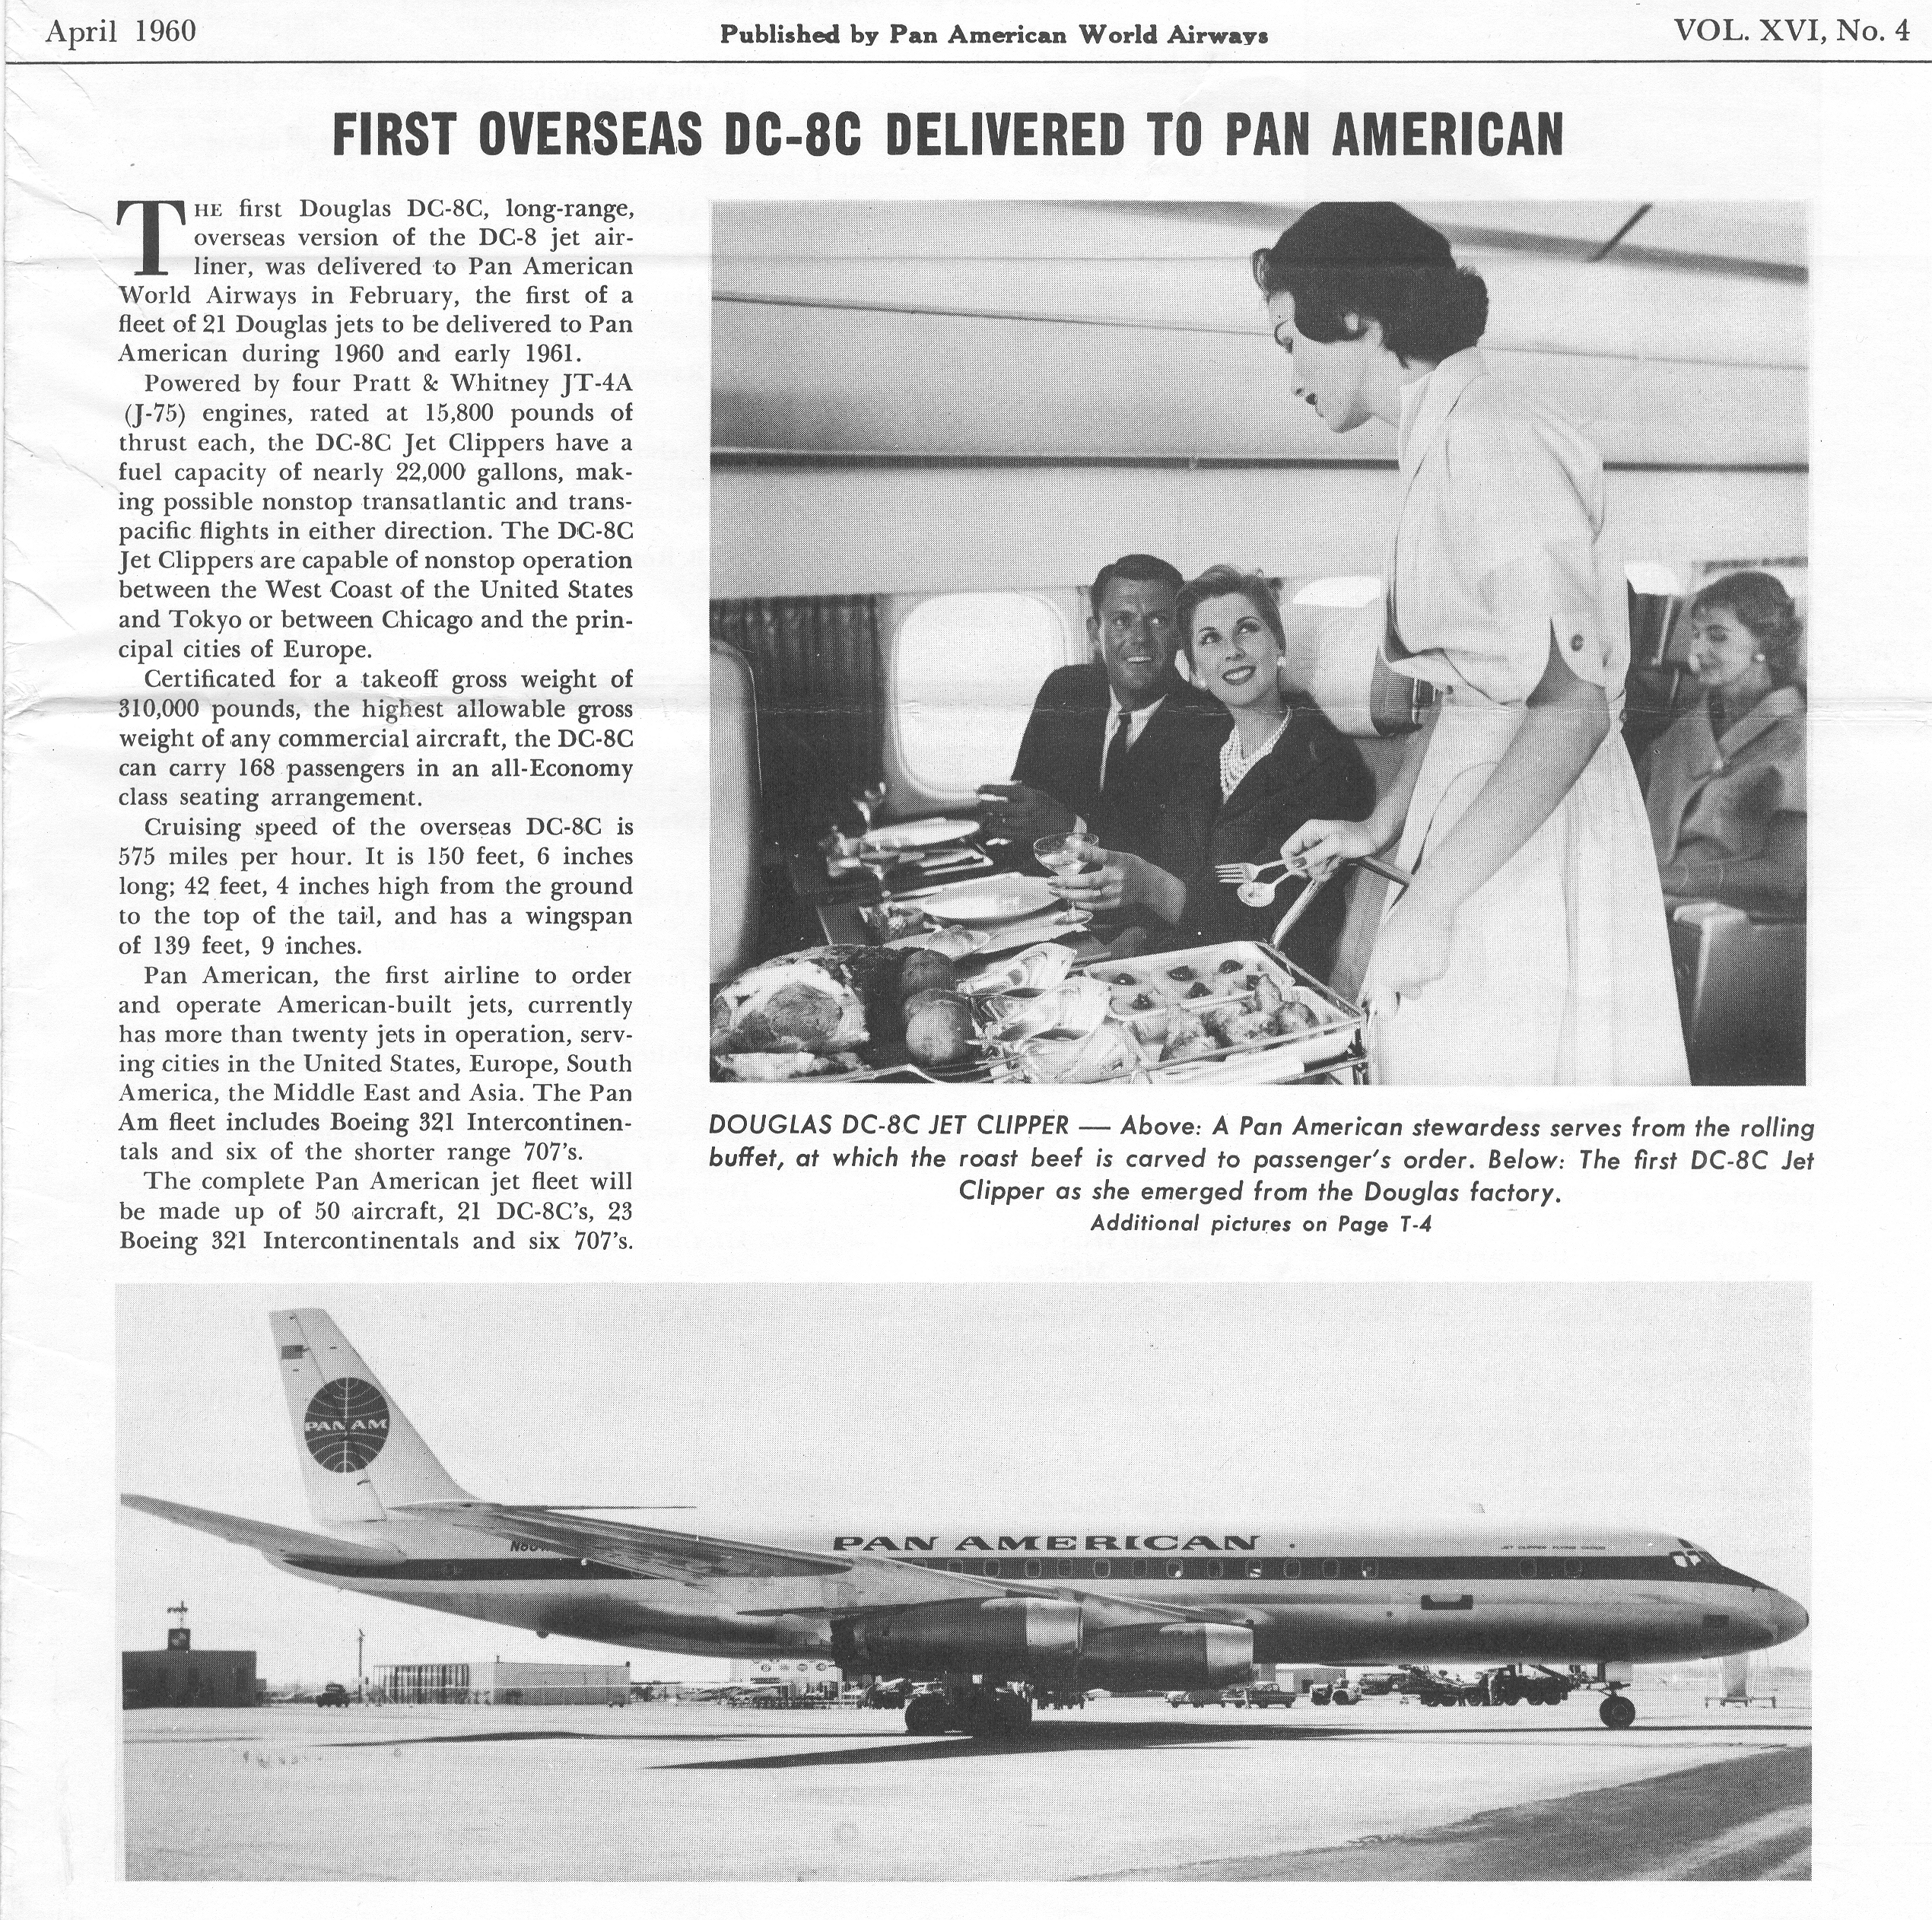 1960 First DC 8 delivered to Pan Am.